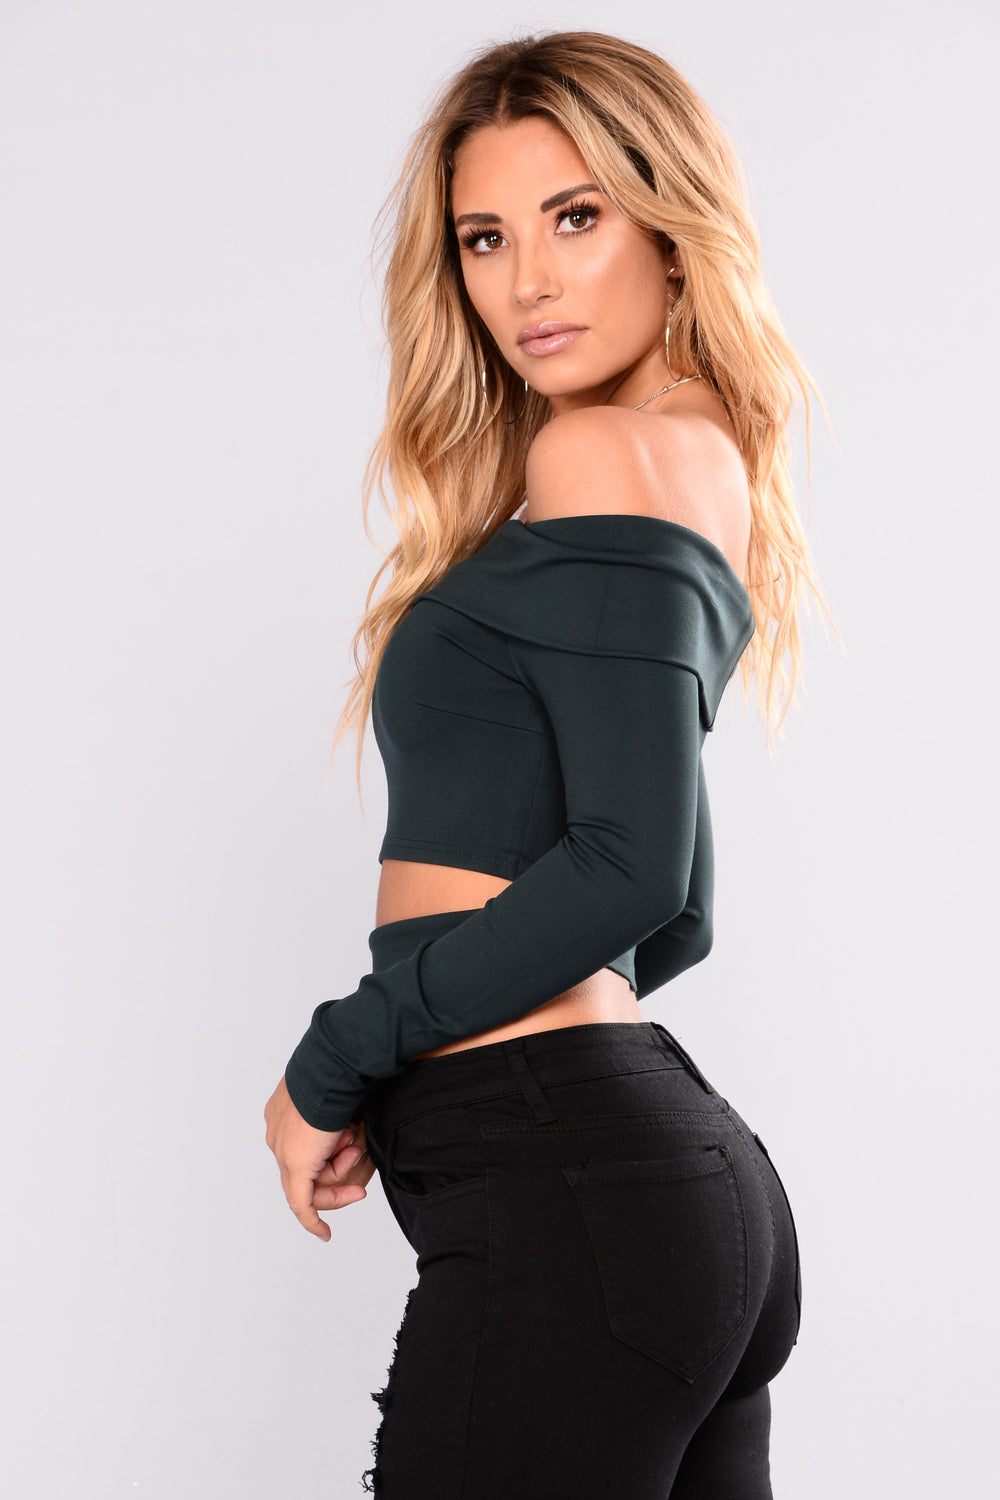 It Don't Stop Long Sleeve Top - Dark Olive